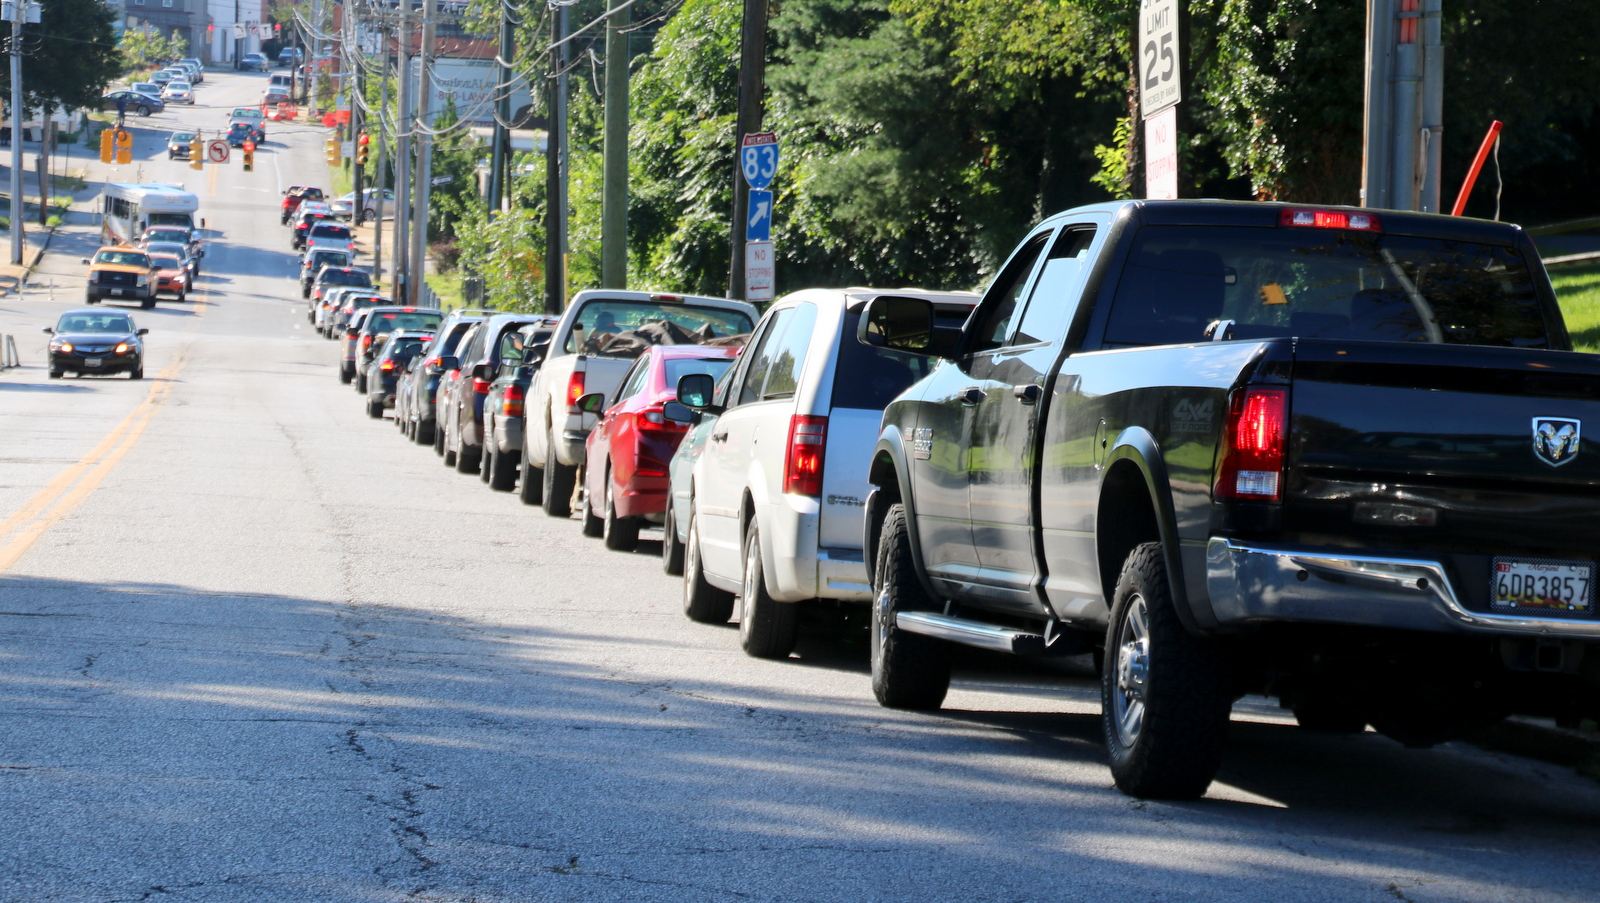 Vehicles wait to get into Baltimore's Sisson Street drop-off center, after curbside recycling collection was suspended in August. (Fern Shen)